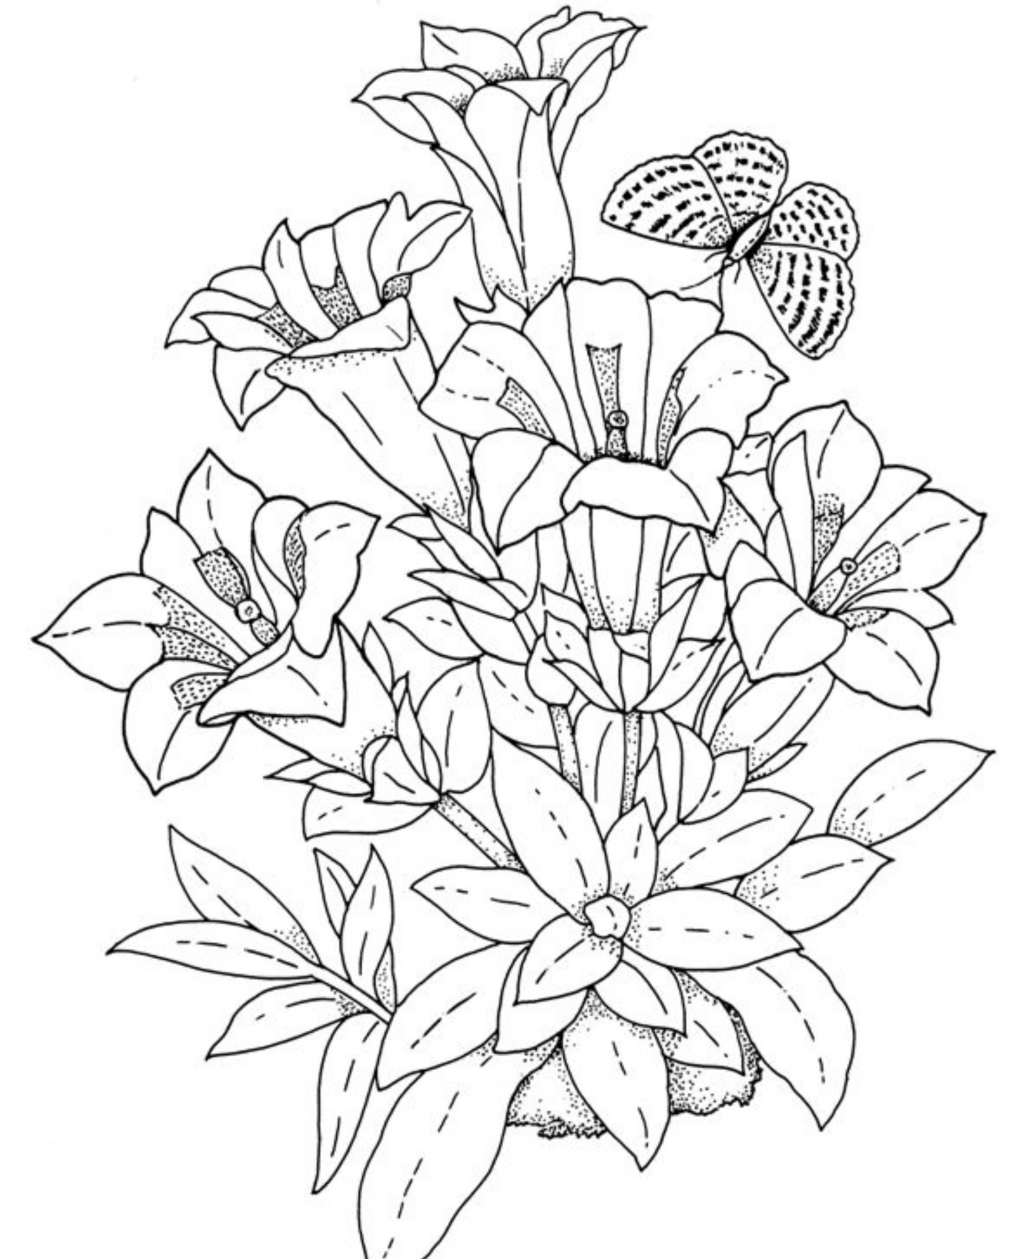 flower printable coloring sheets detailed flower coloring pages to download and print for free flower sheets printable coloring